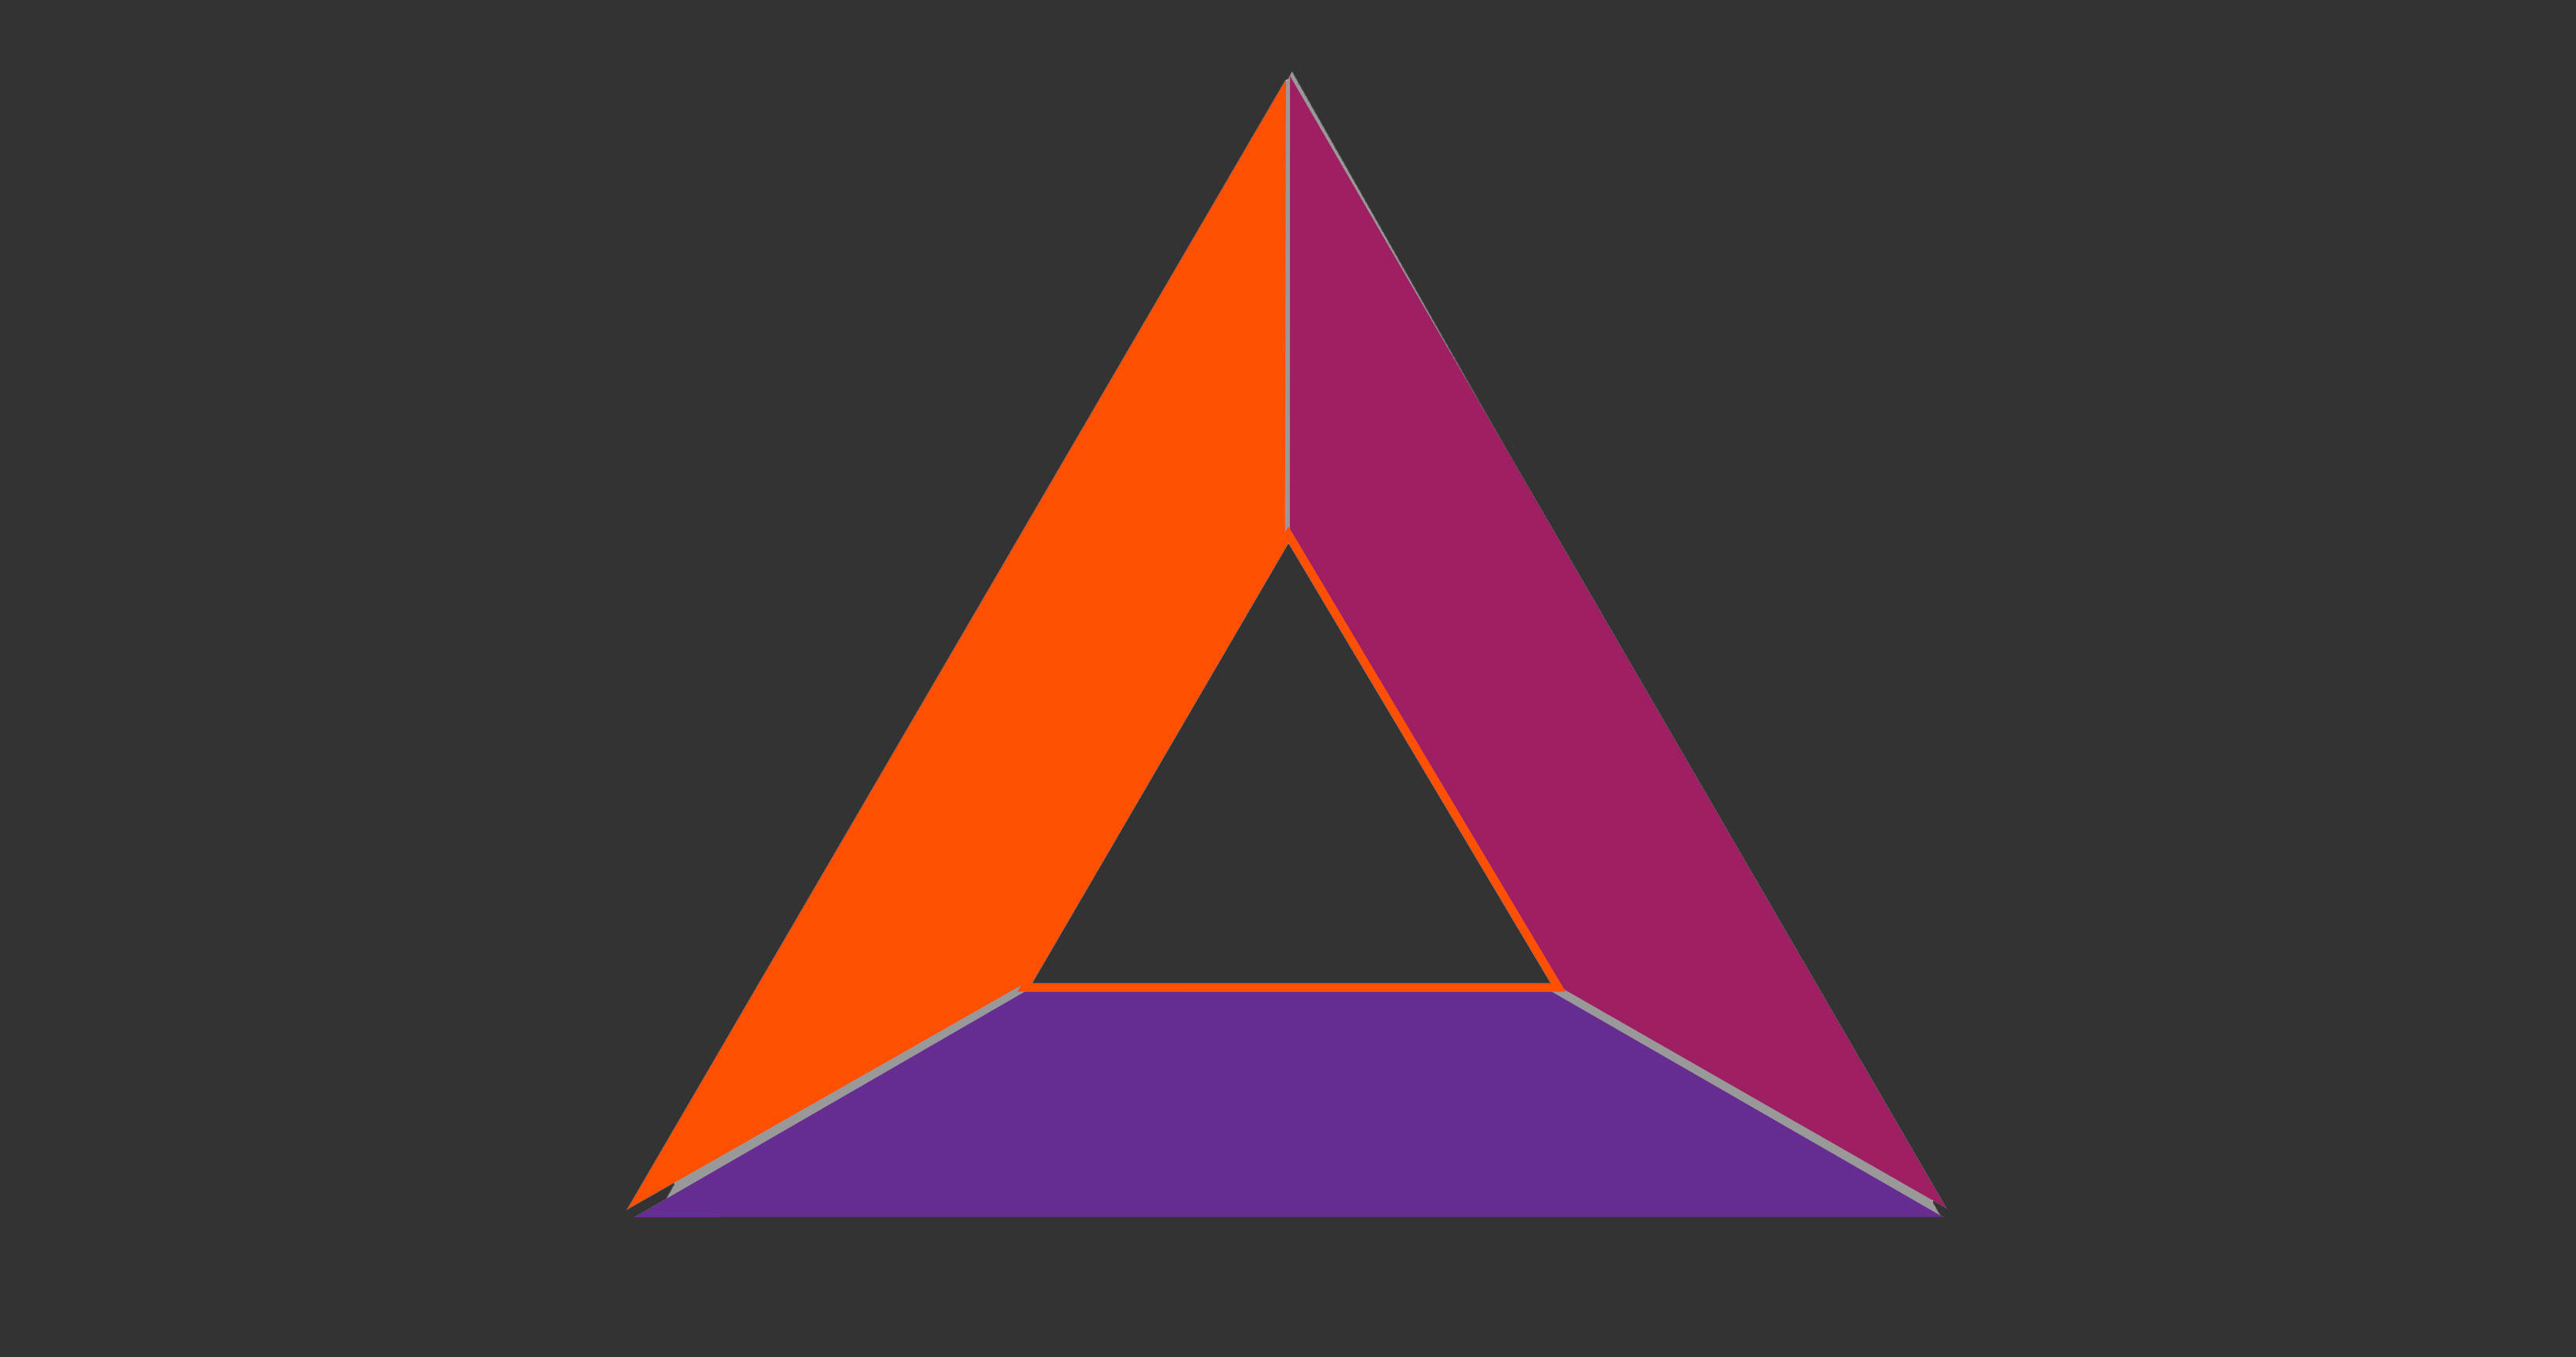 The Brave browser's basic attention token (BAT) technology is designed to let advertisers pay publishers.